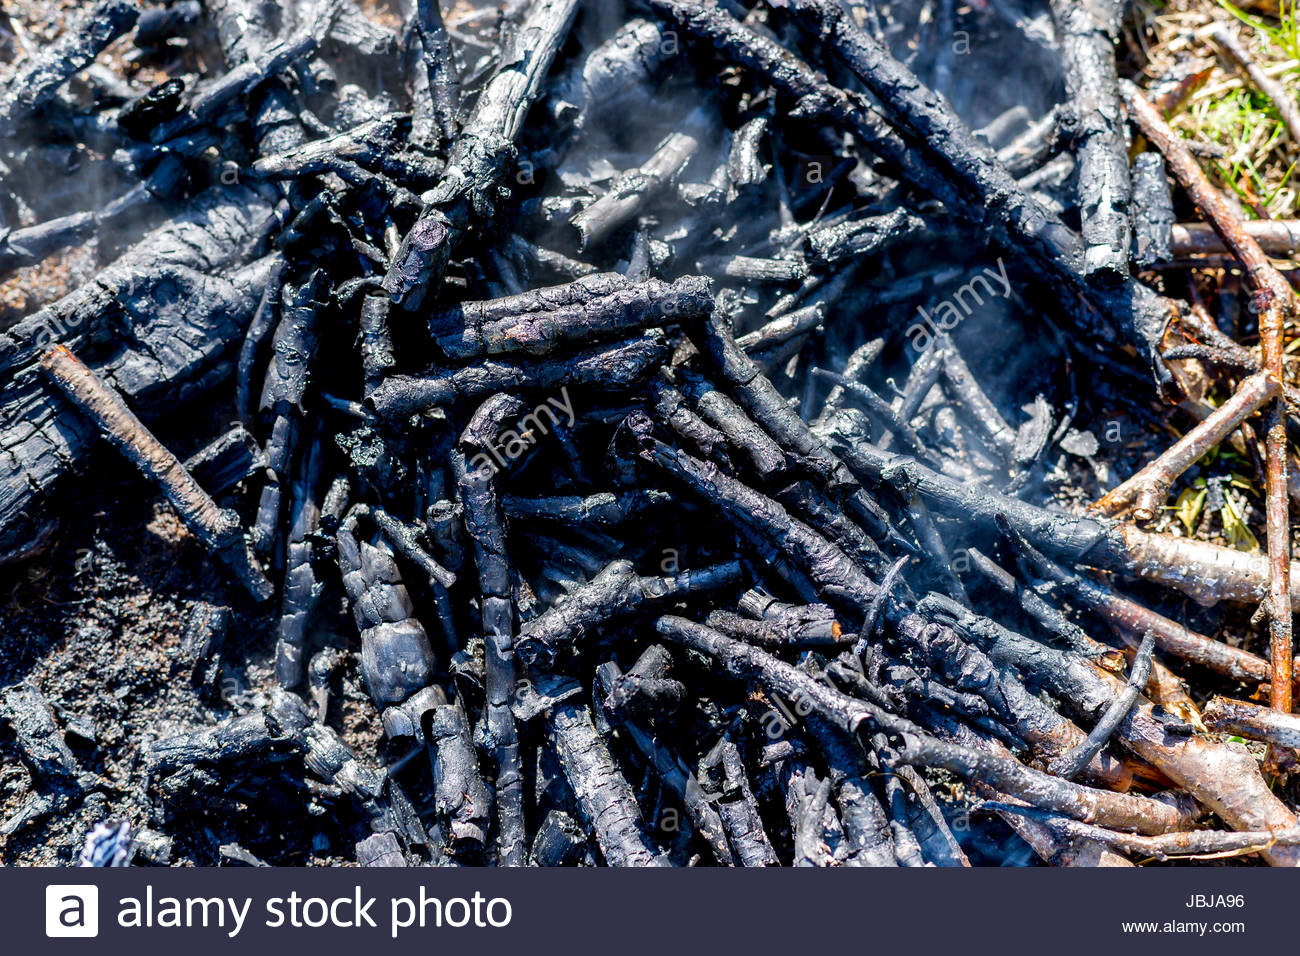 Coals from a bonfire with creeping smoke - Stock Image